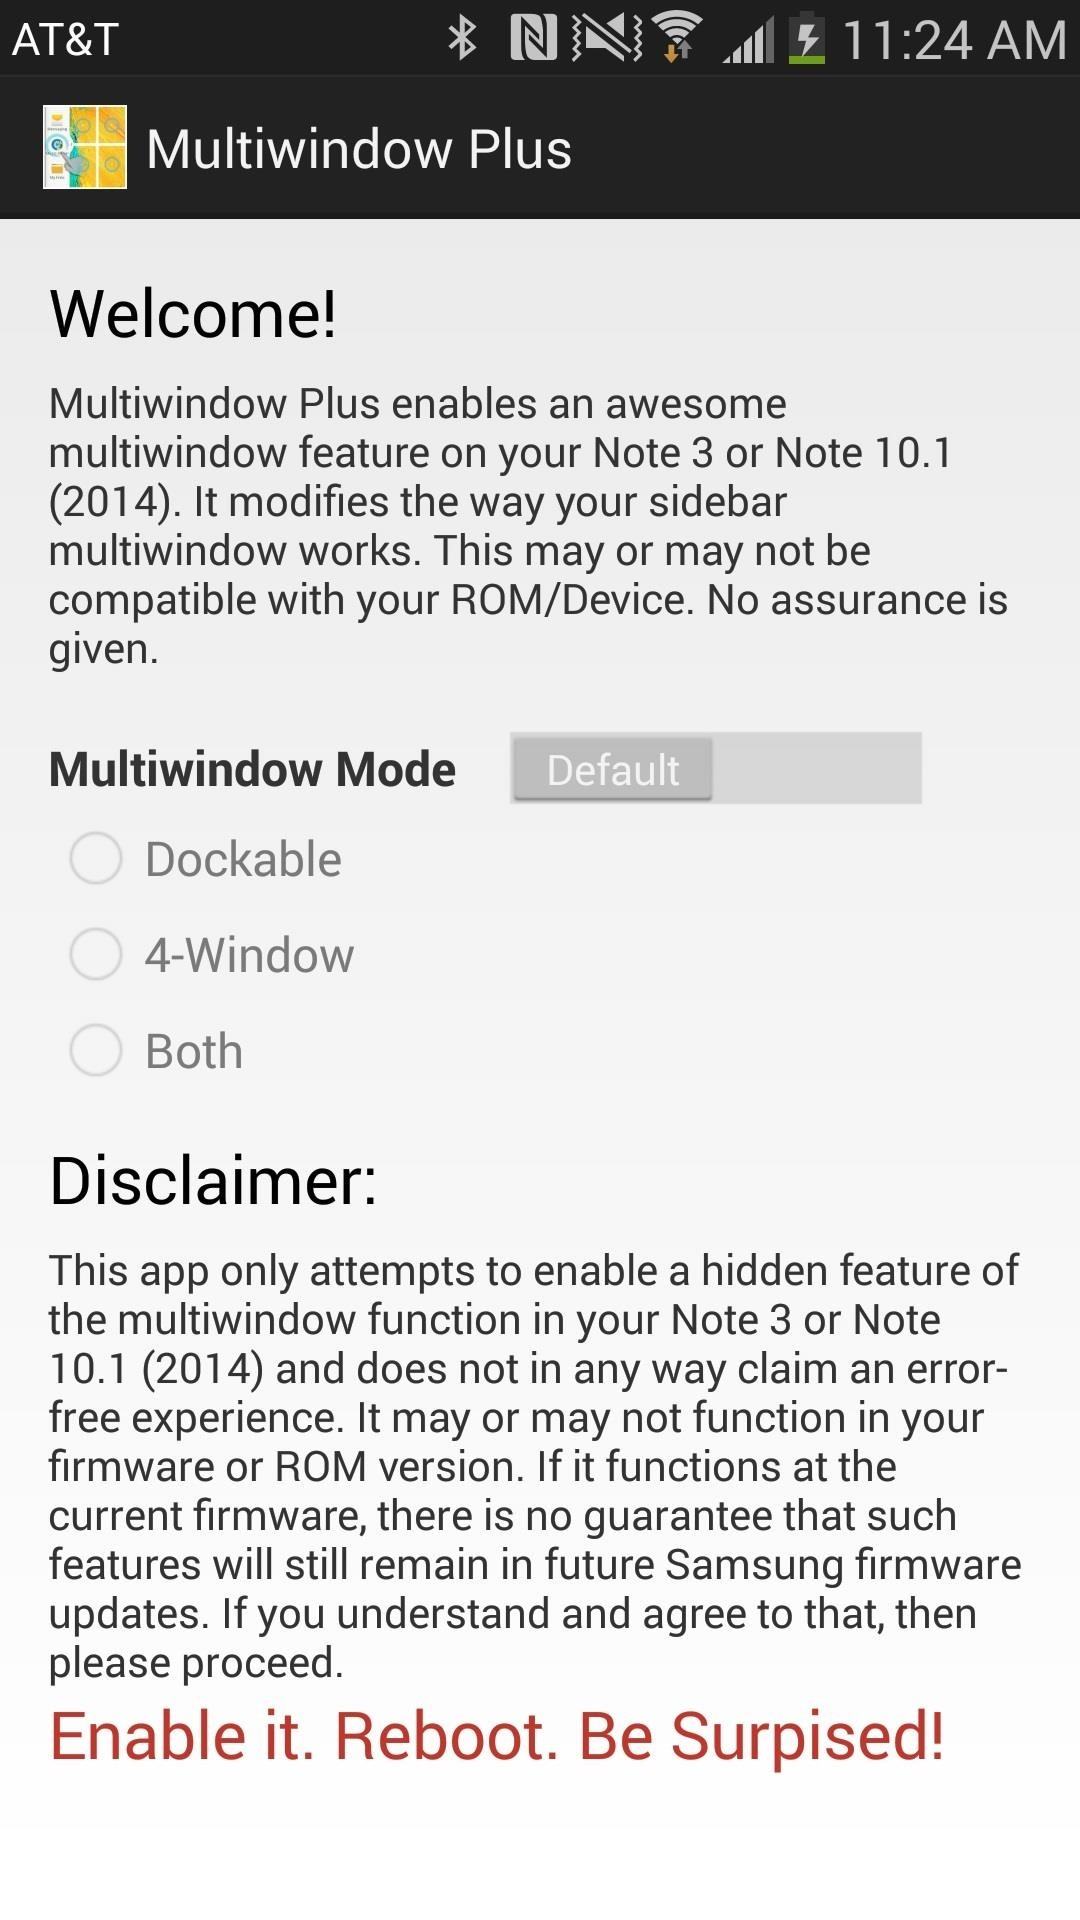 How to Enable the Hidden Multi Window Features on Your Samsung Galaxy Note 3